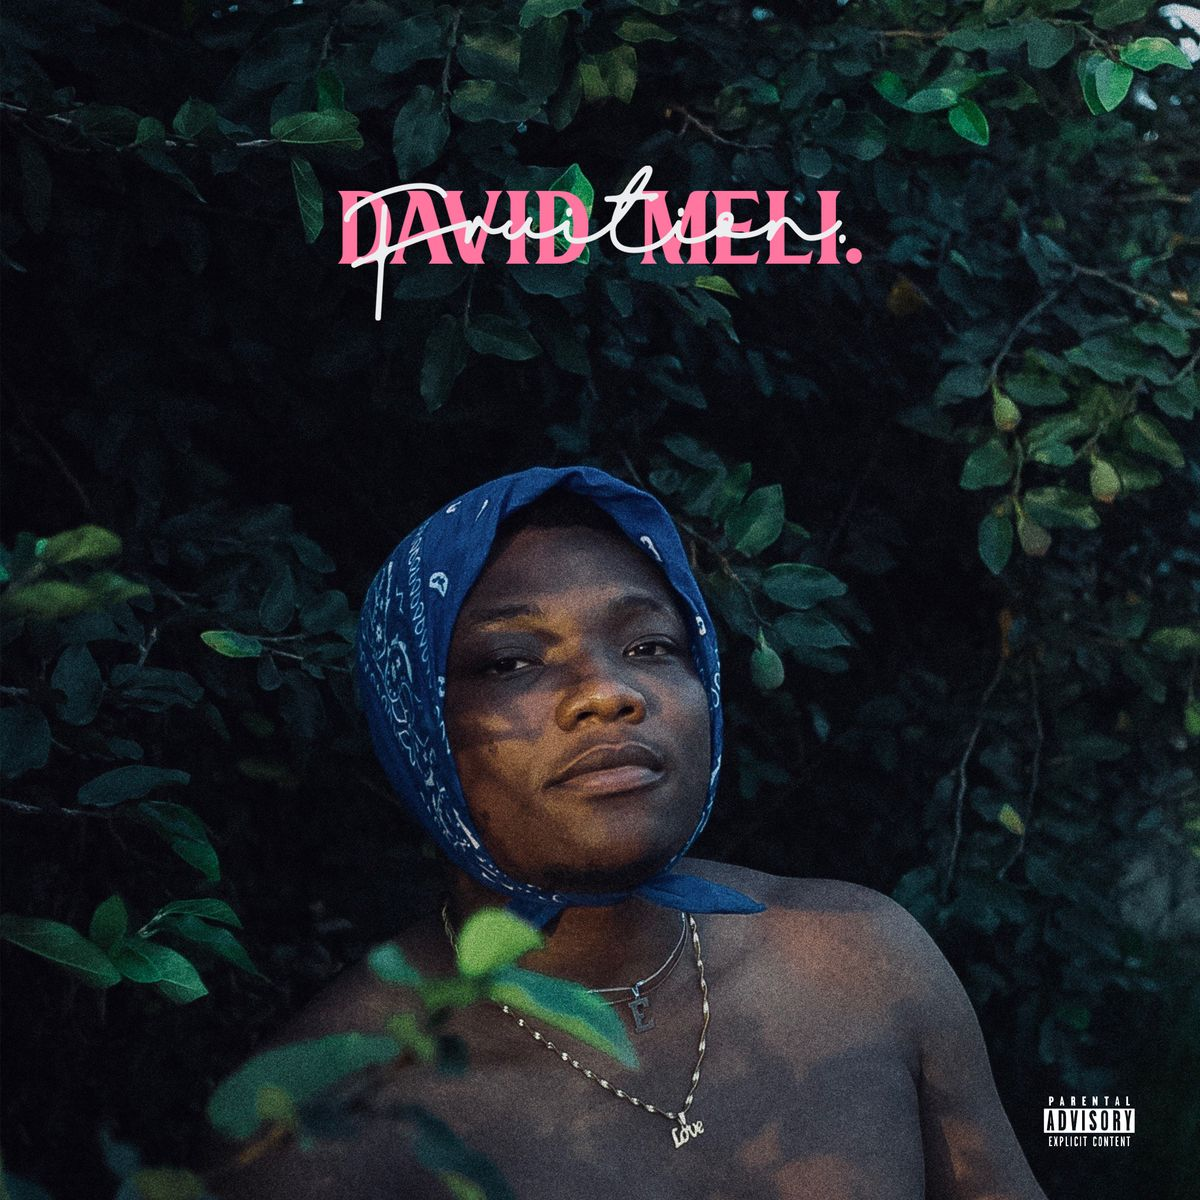 David Meli - Wande Coal - Akon & Wizkid: Best New Music